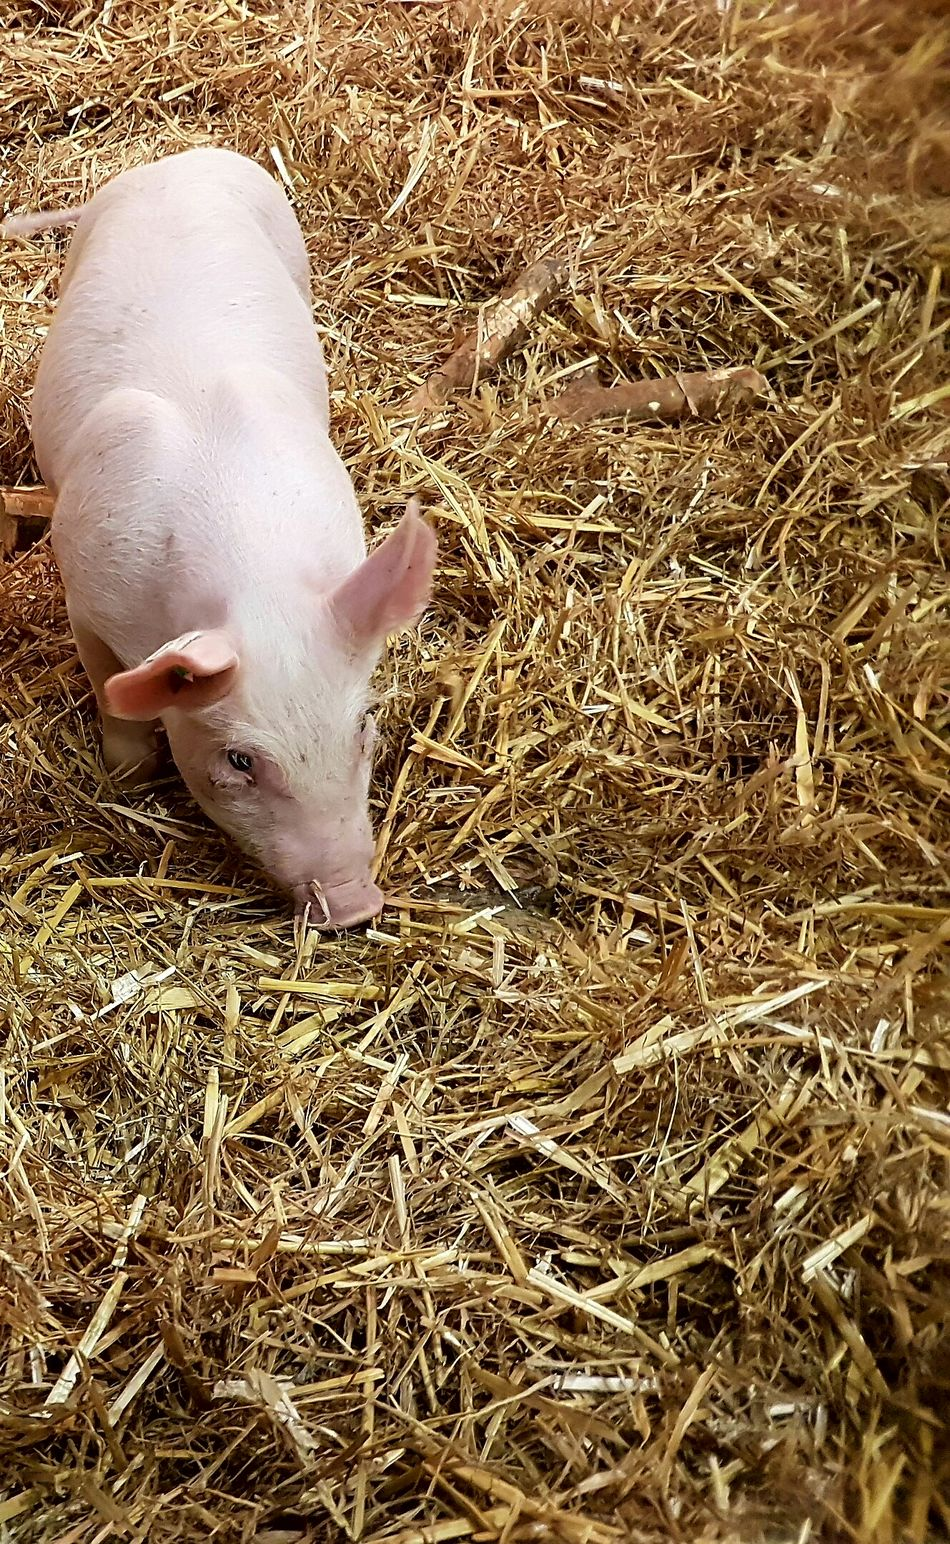 Animal Themes One Animal Meat Processing Animal Body Part Cover Piggies! Piggy Piggies Swine Pig Pork Animal Photography Industry Meat Market Meat! Meat! Meat! Farming Agriculture Photography Agriculture Animal Skin Animal Farm Animals Background